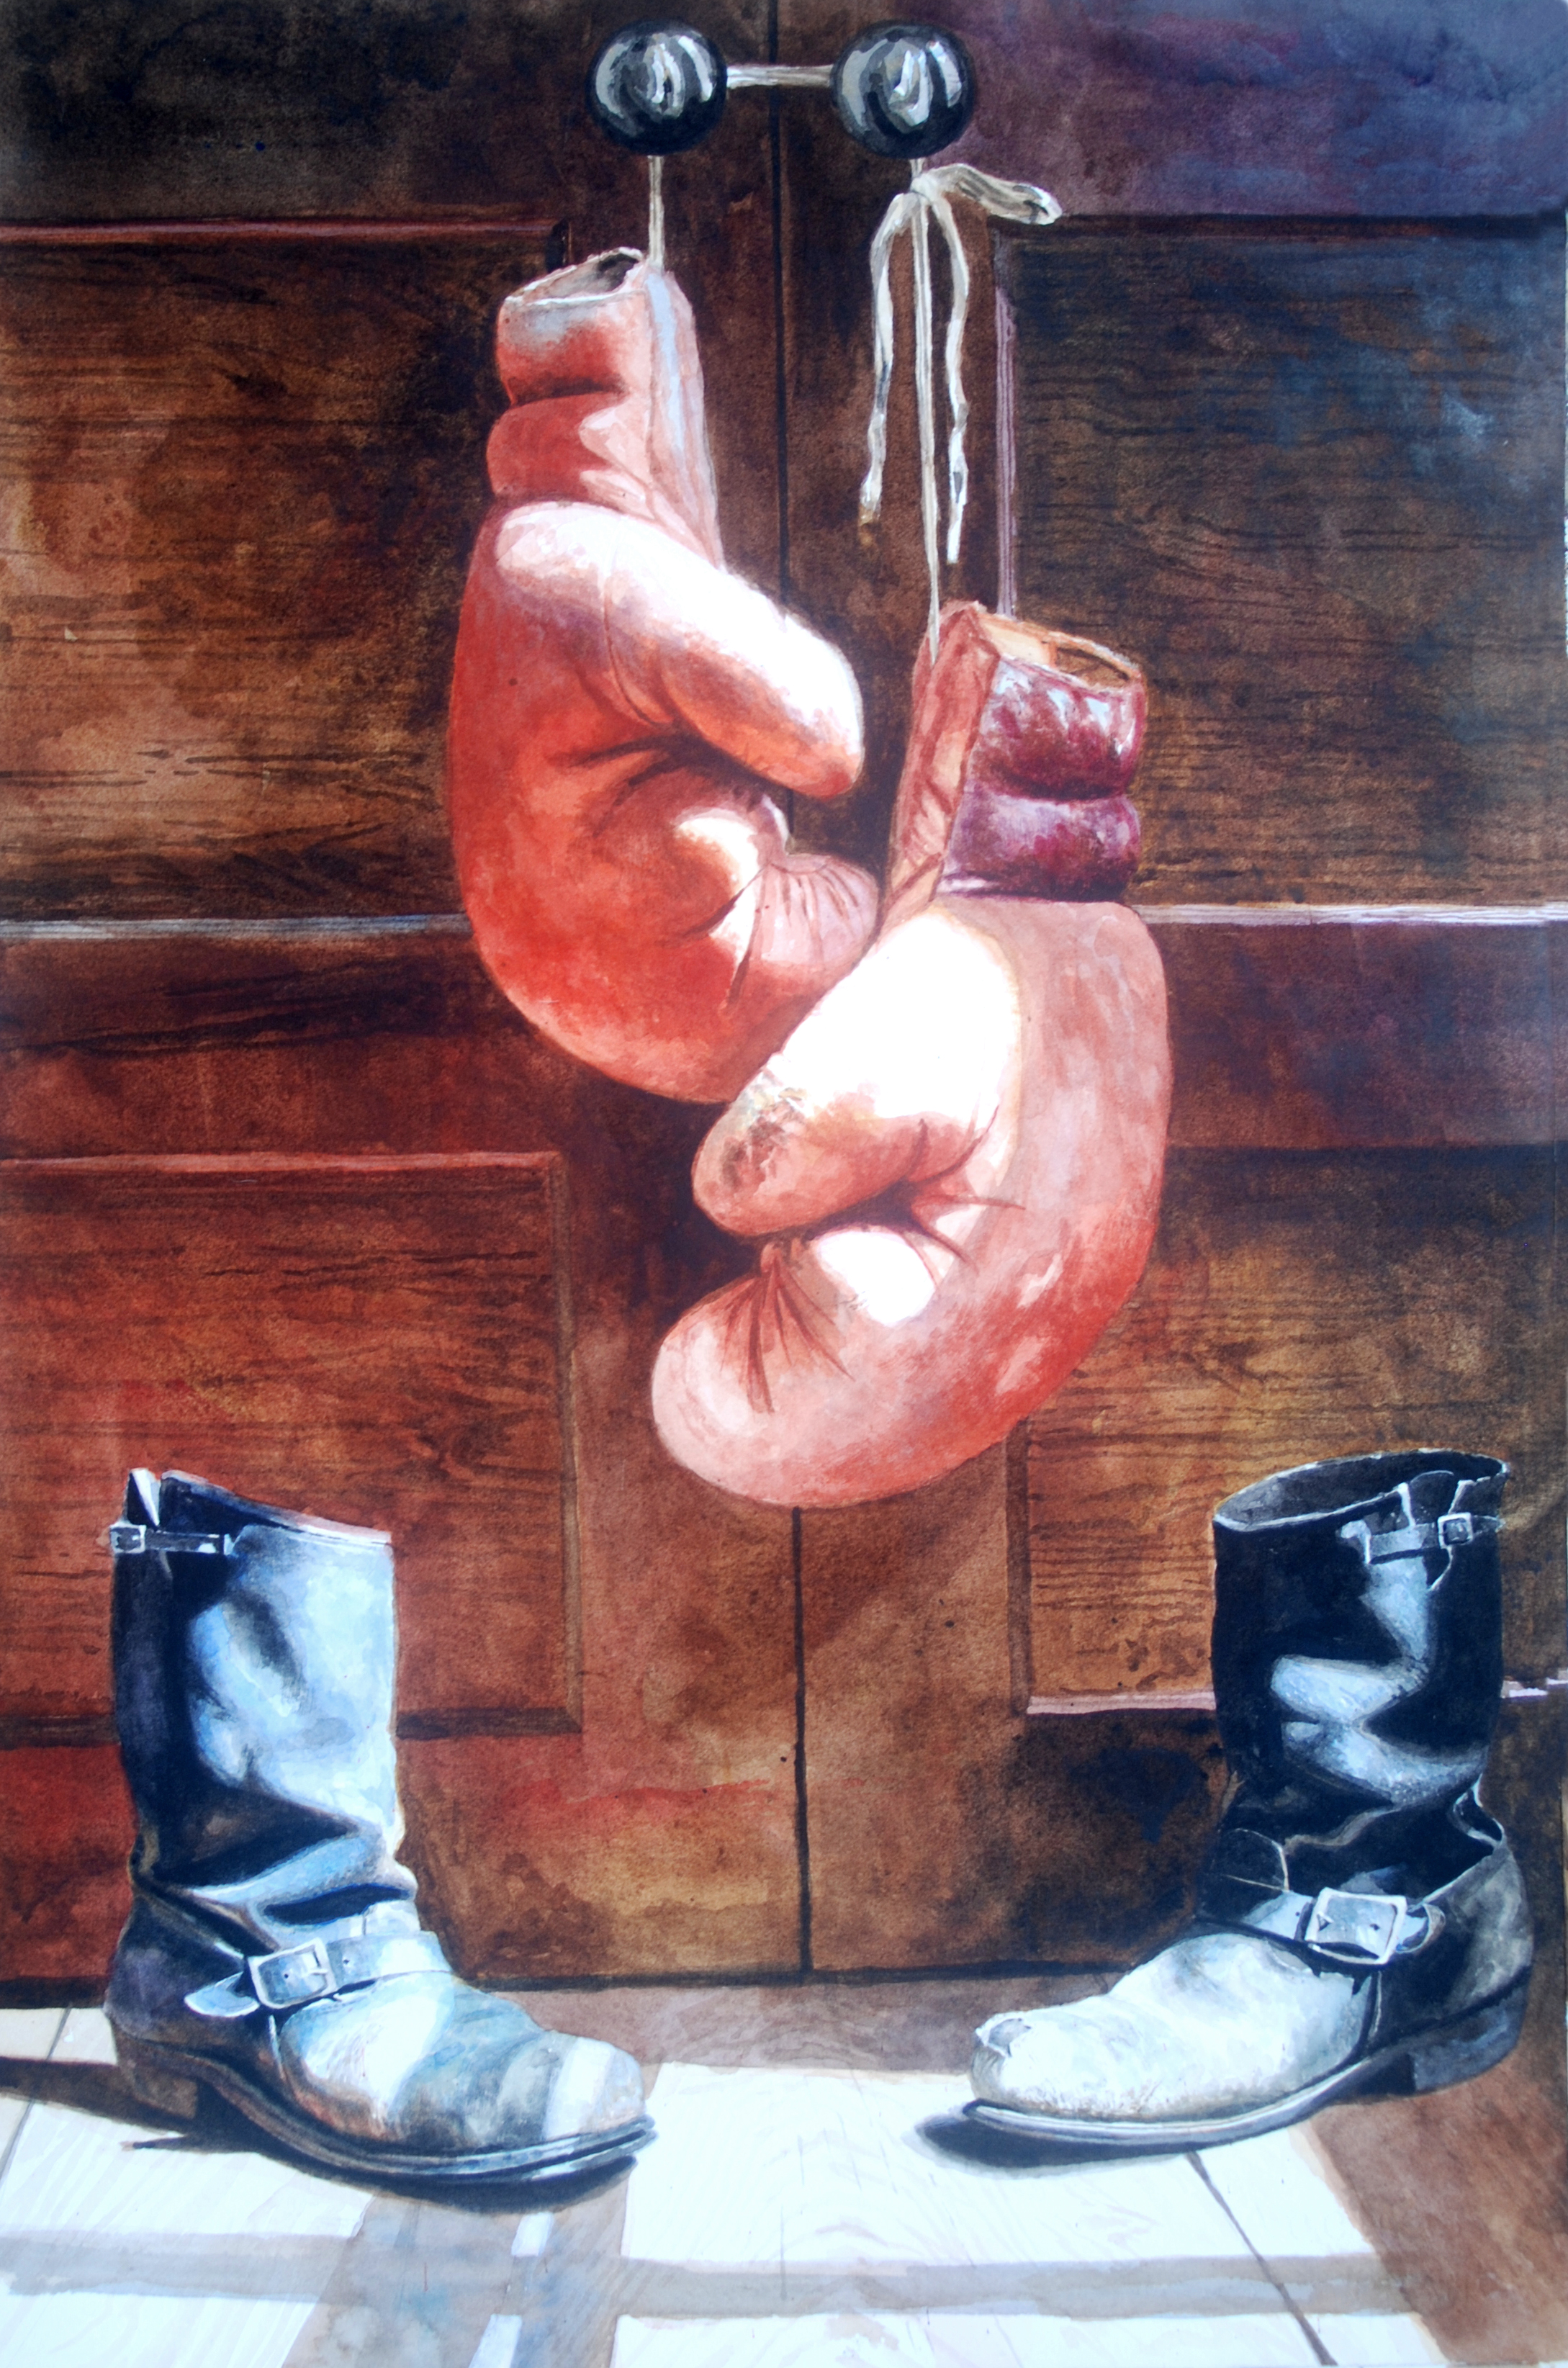 Boots & Boxing Gloves